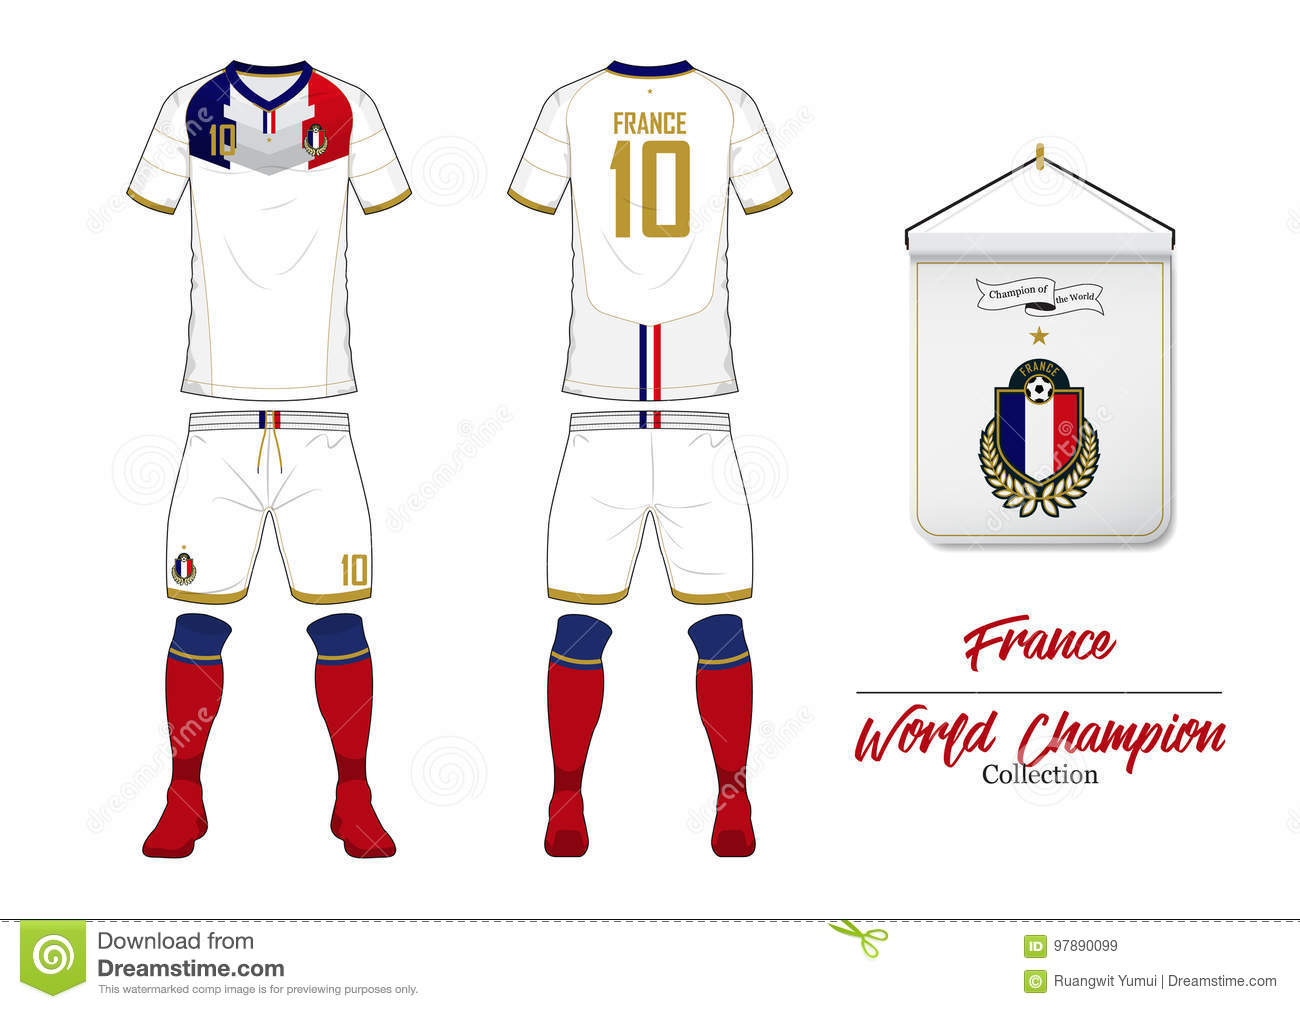 e24cc48e1 Soccer jersey or football kit. France football national team. Football logo  with house flag. Front and rear view soccer uniform.